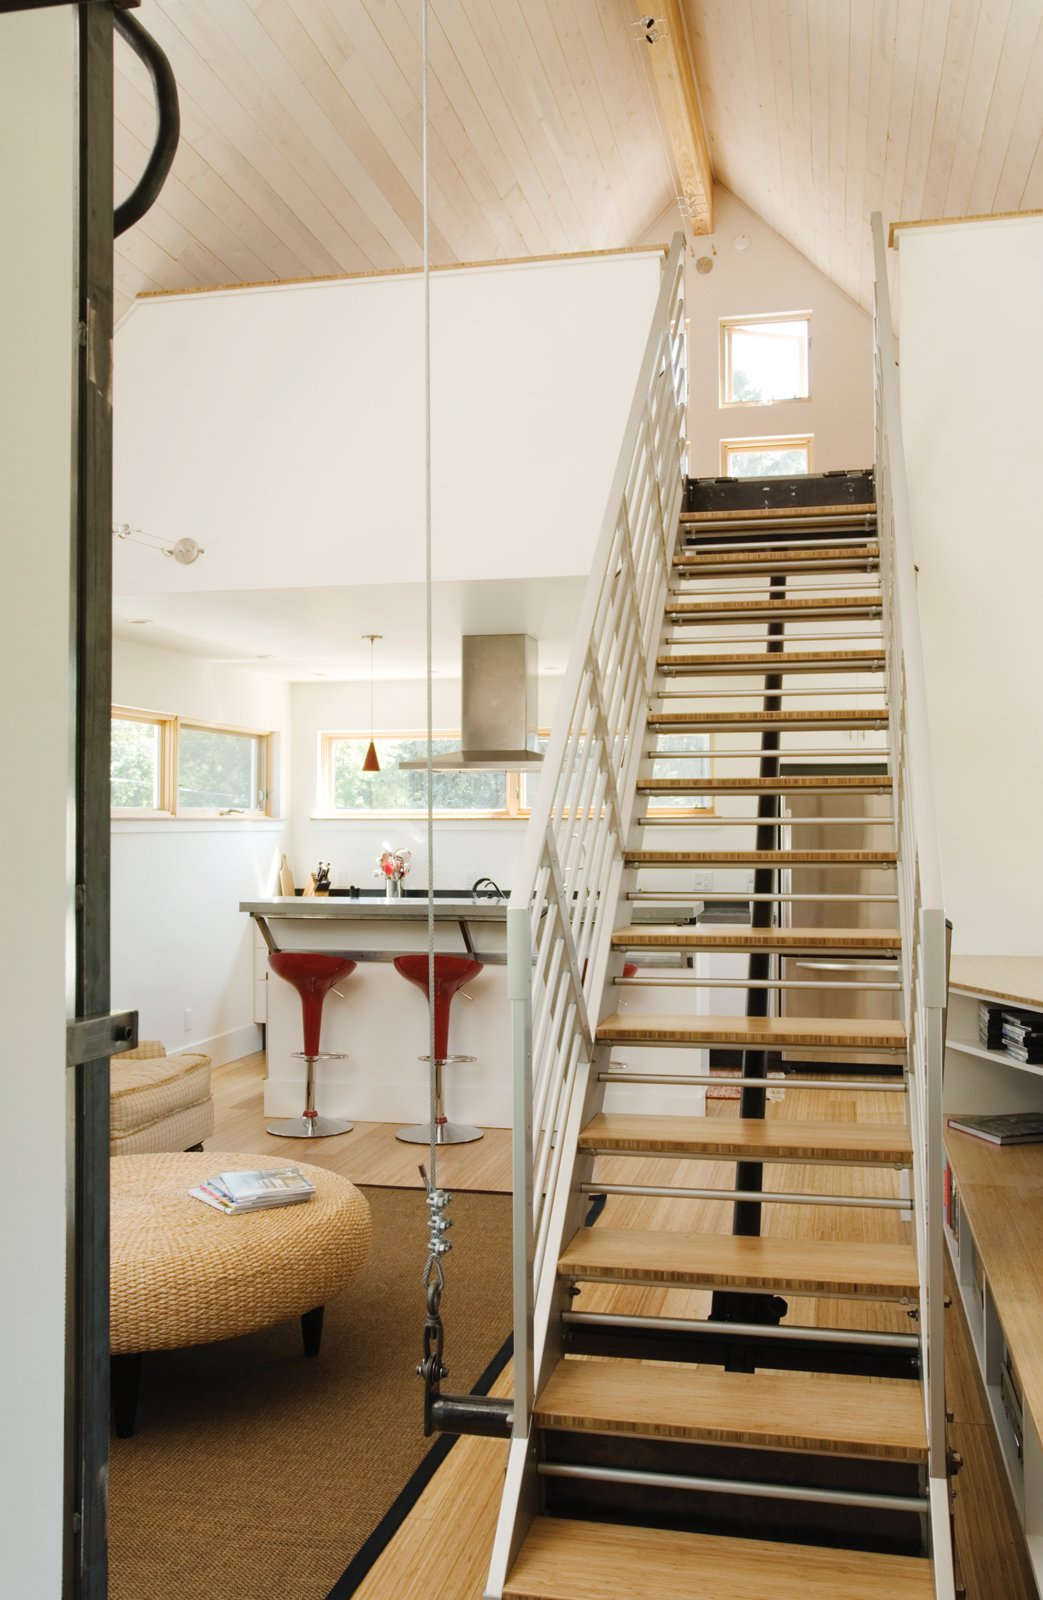 Movement is an inherent part of this small-space solution, and it comes as no surprise that the architects were inspired by automotive industrial designs and the stairs include a vertical track that utilizes modified rubber skateboard wheels.  Interesting from The Best of Small Spaces